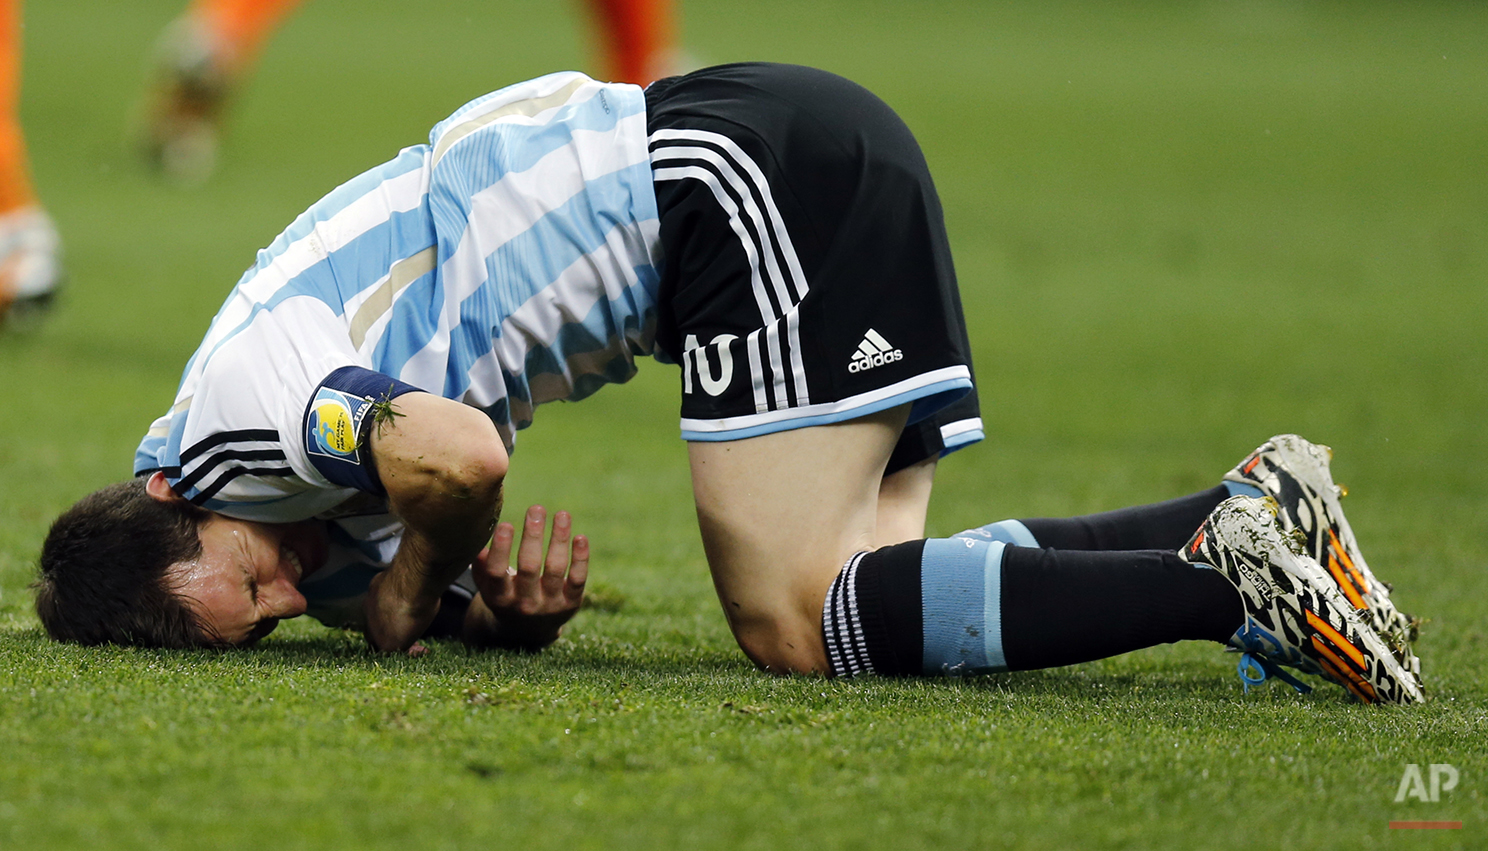 Argentina's Lionel Messi sits on the floor during the World Cup semifinal soccer match between the Netherlands and Argentina at the Itaquerao Stadium in Sao Paulo, Brazil, Wednesday, July 9, 2014. (AP Photo/Frank Augstein)